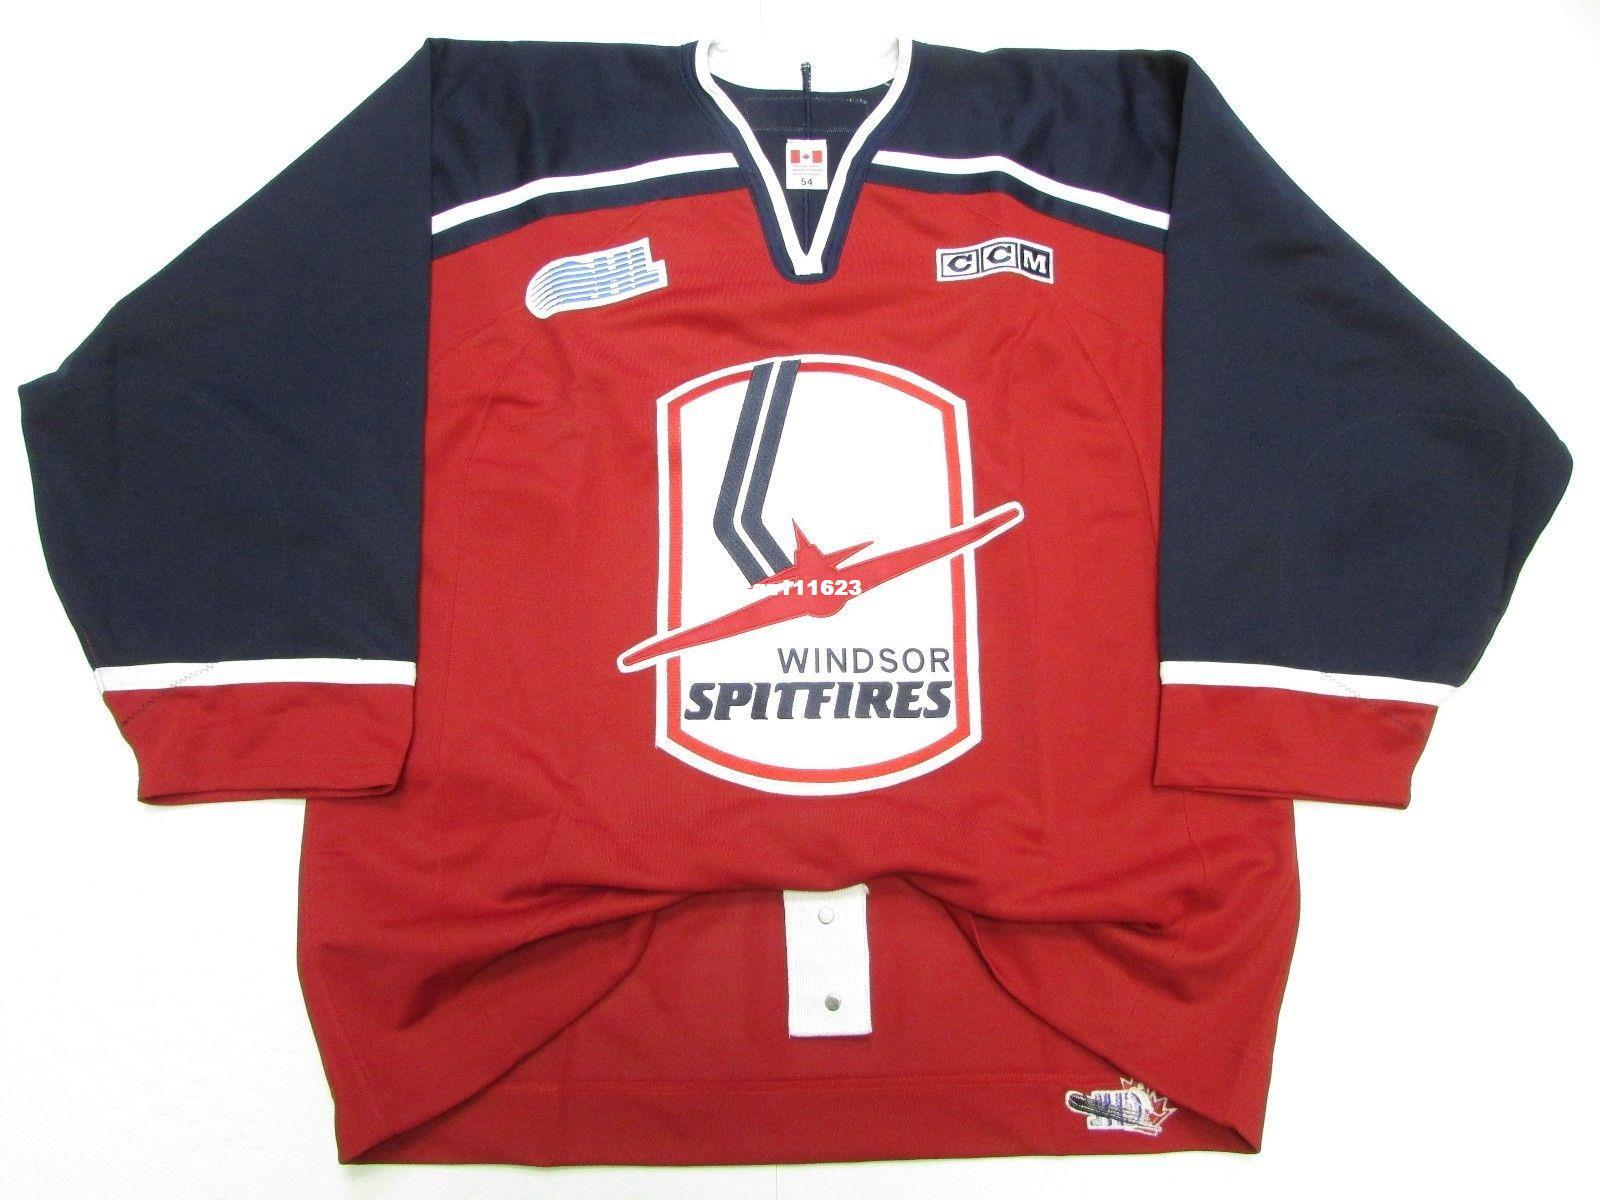 2019 Cheap Custom WINDSOR SPITFIRES AUTHENTIC OHL RED PRO CCM HOCKEY JERSEY  Red Jerseys From Cgz111623 797c7a38b